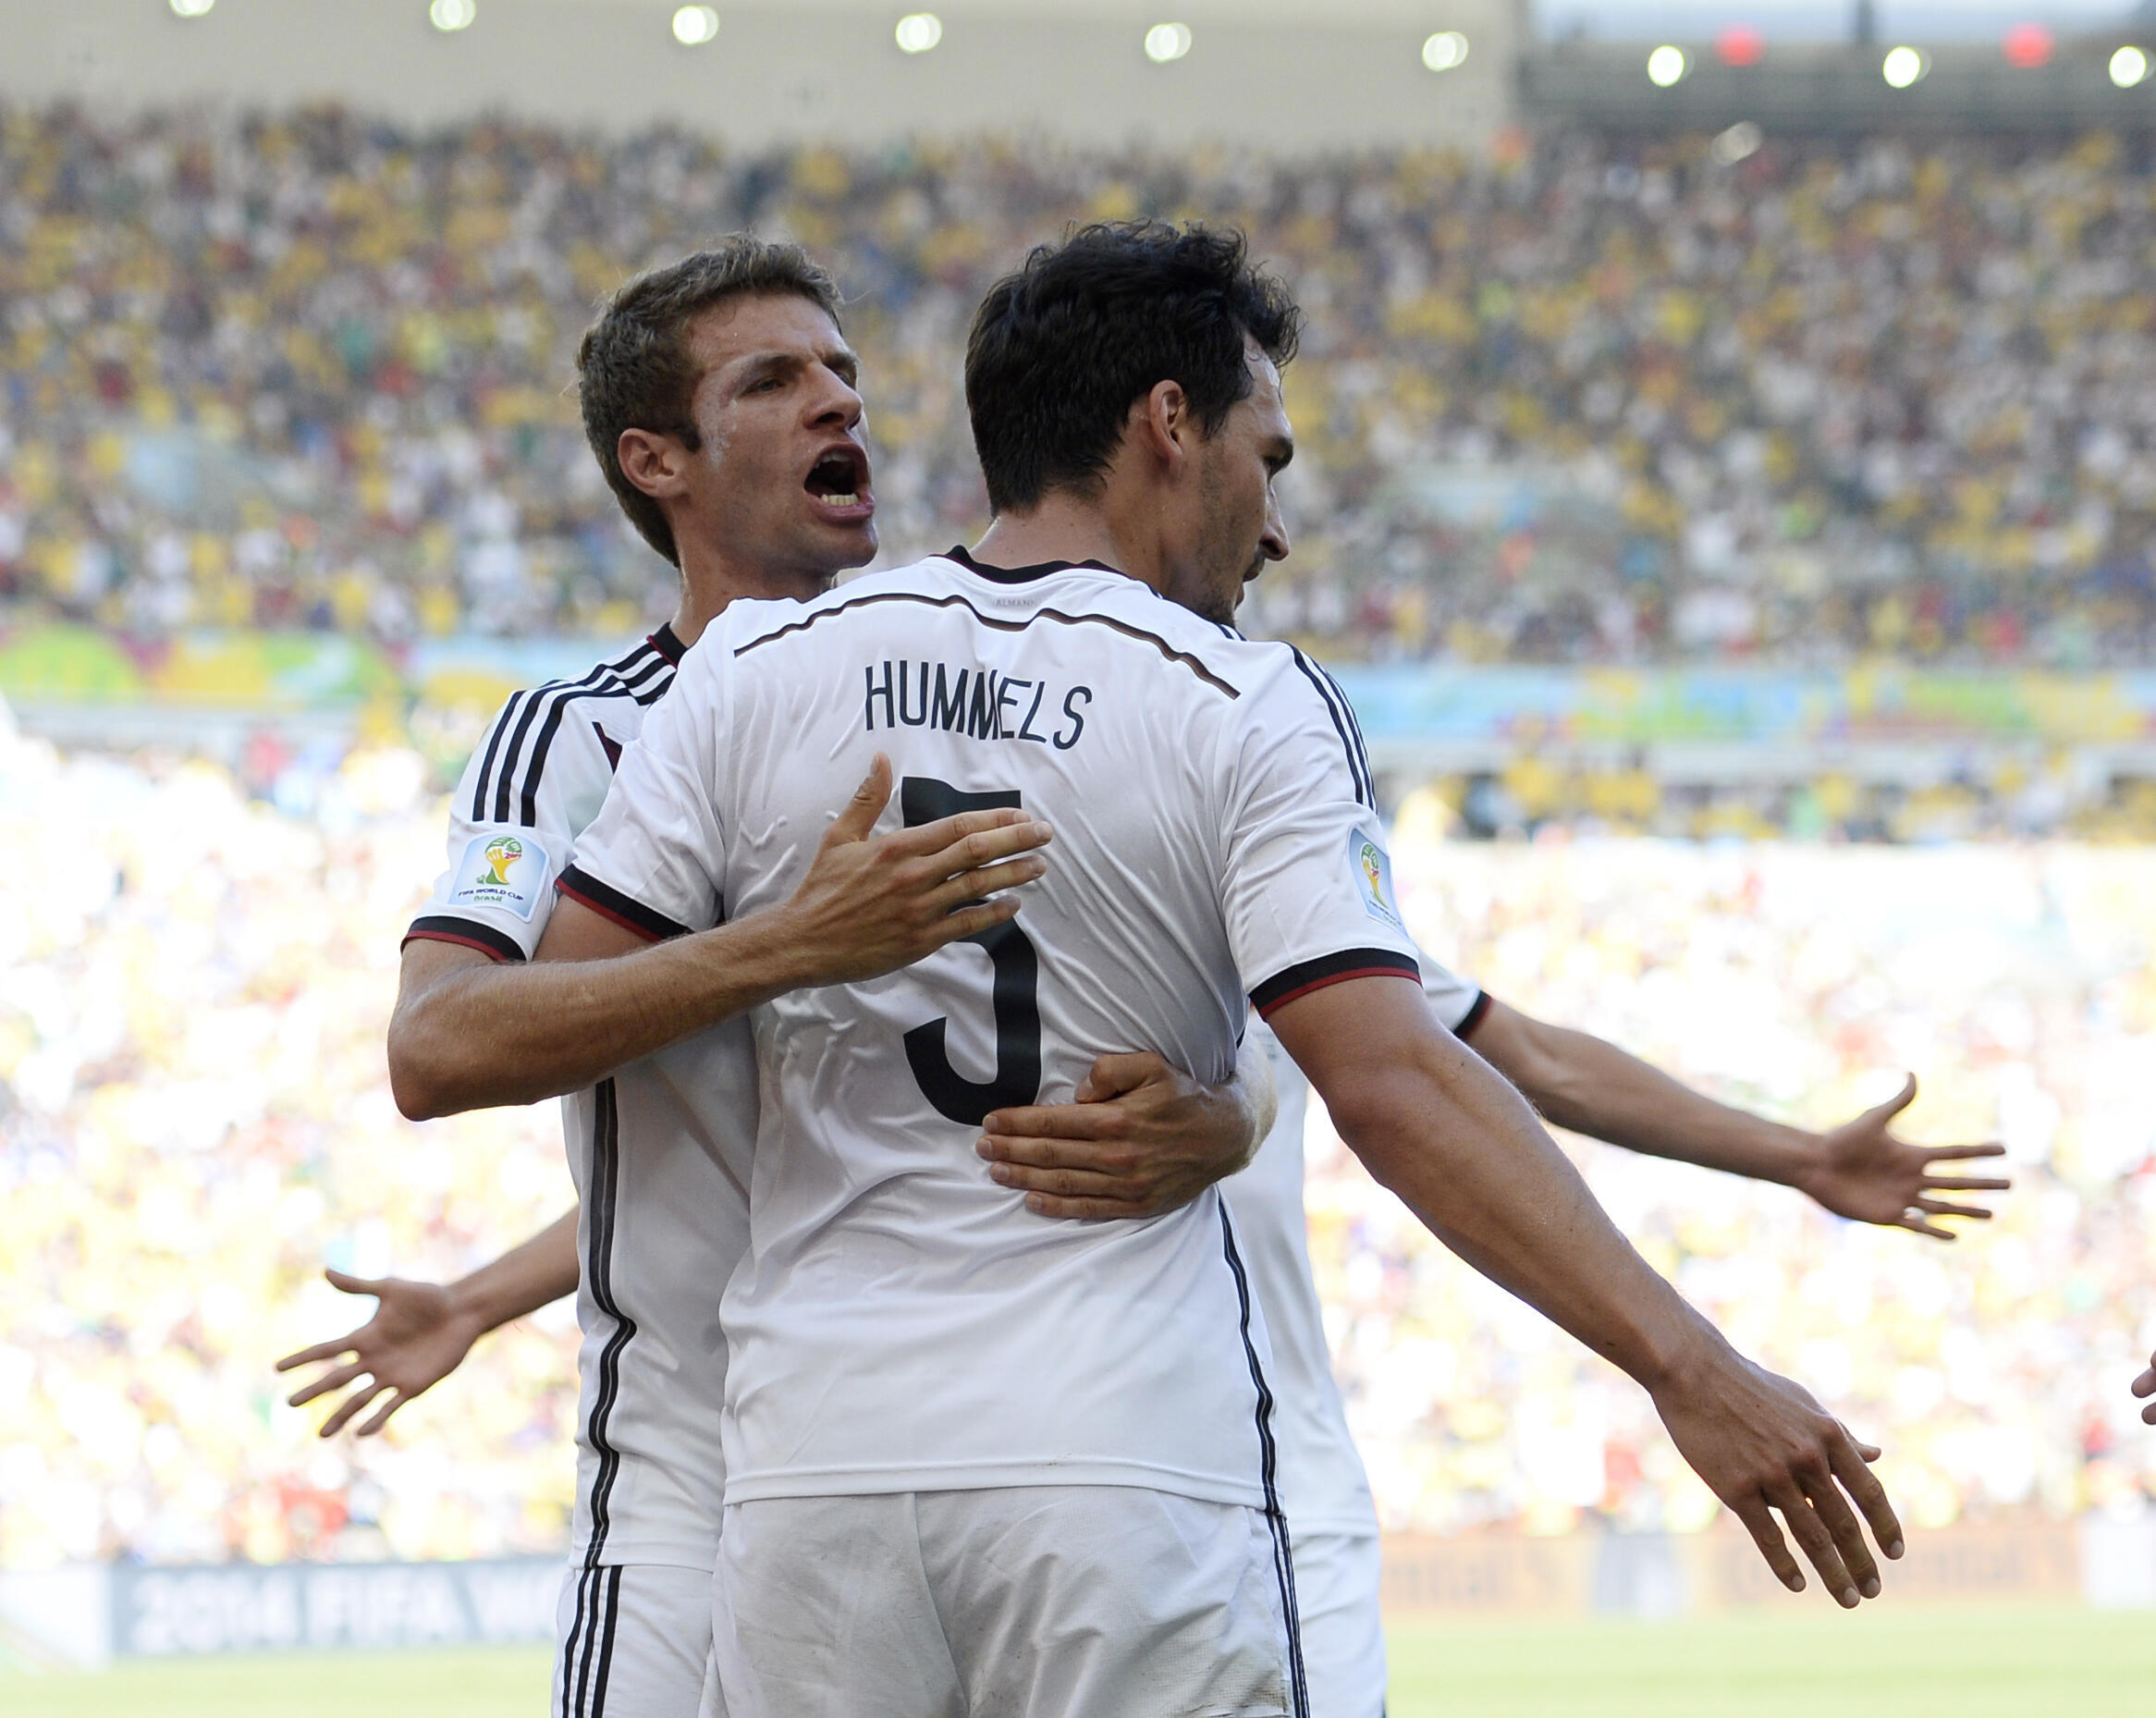 Mats Hummels (right) and Thomas Müller featured in Germany's 2014 World Cup winning team. They were told in March 2019 they would not feature again in the national team but have been recalled for next month's European championships.